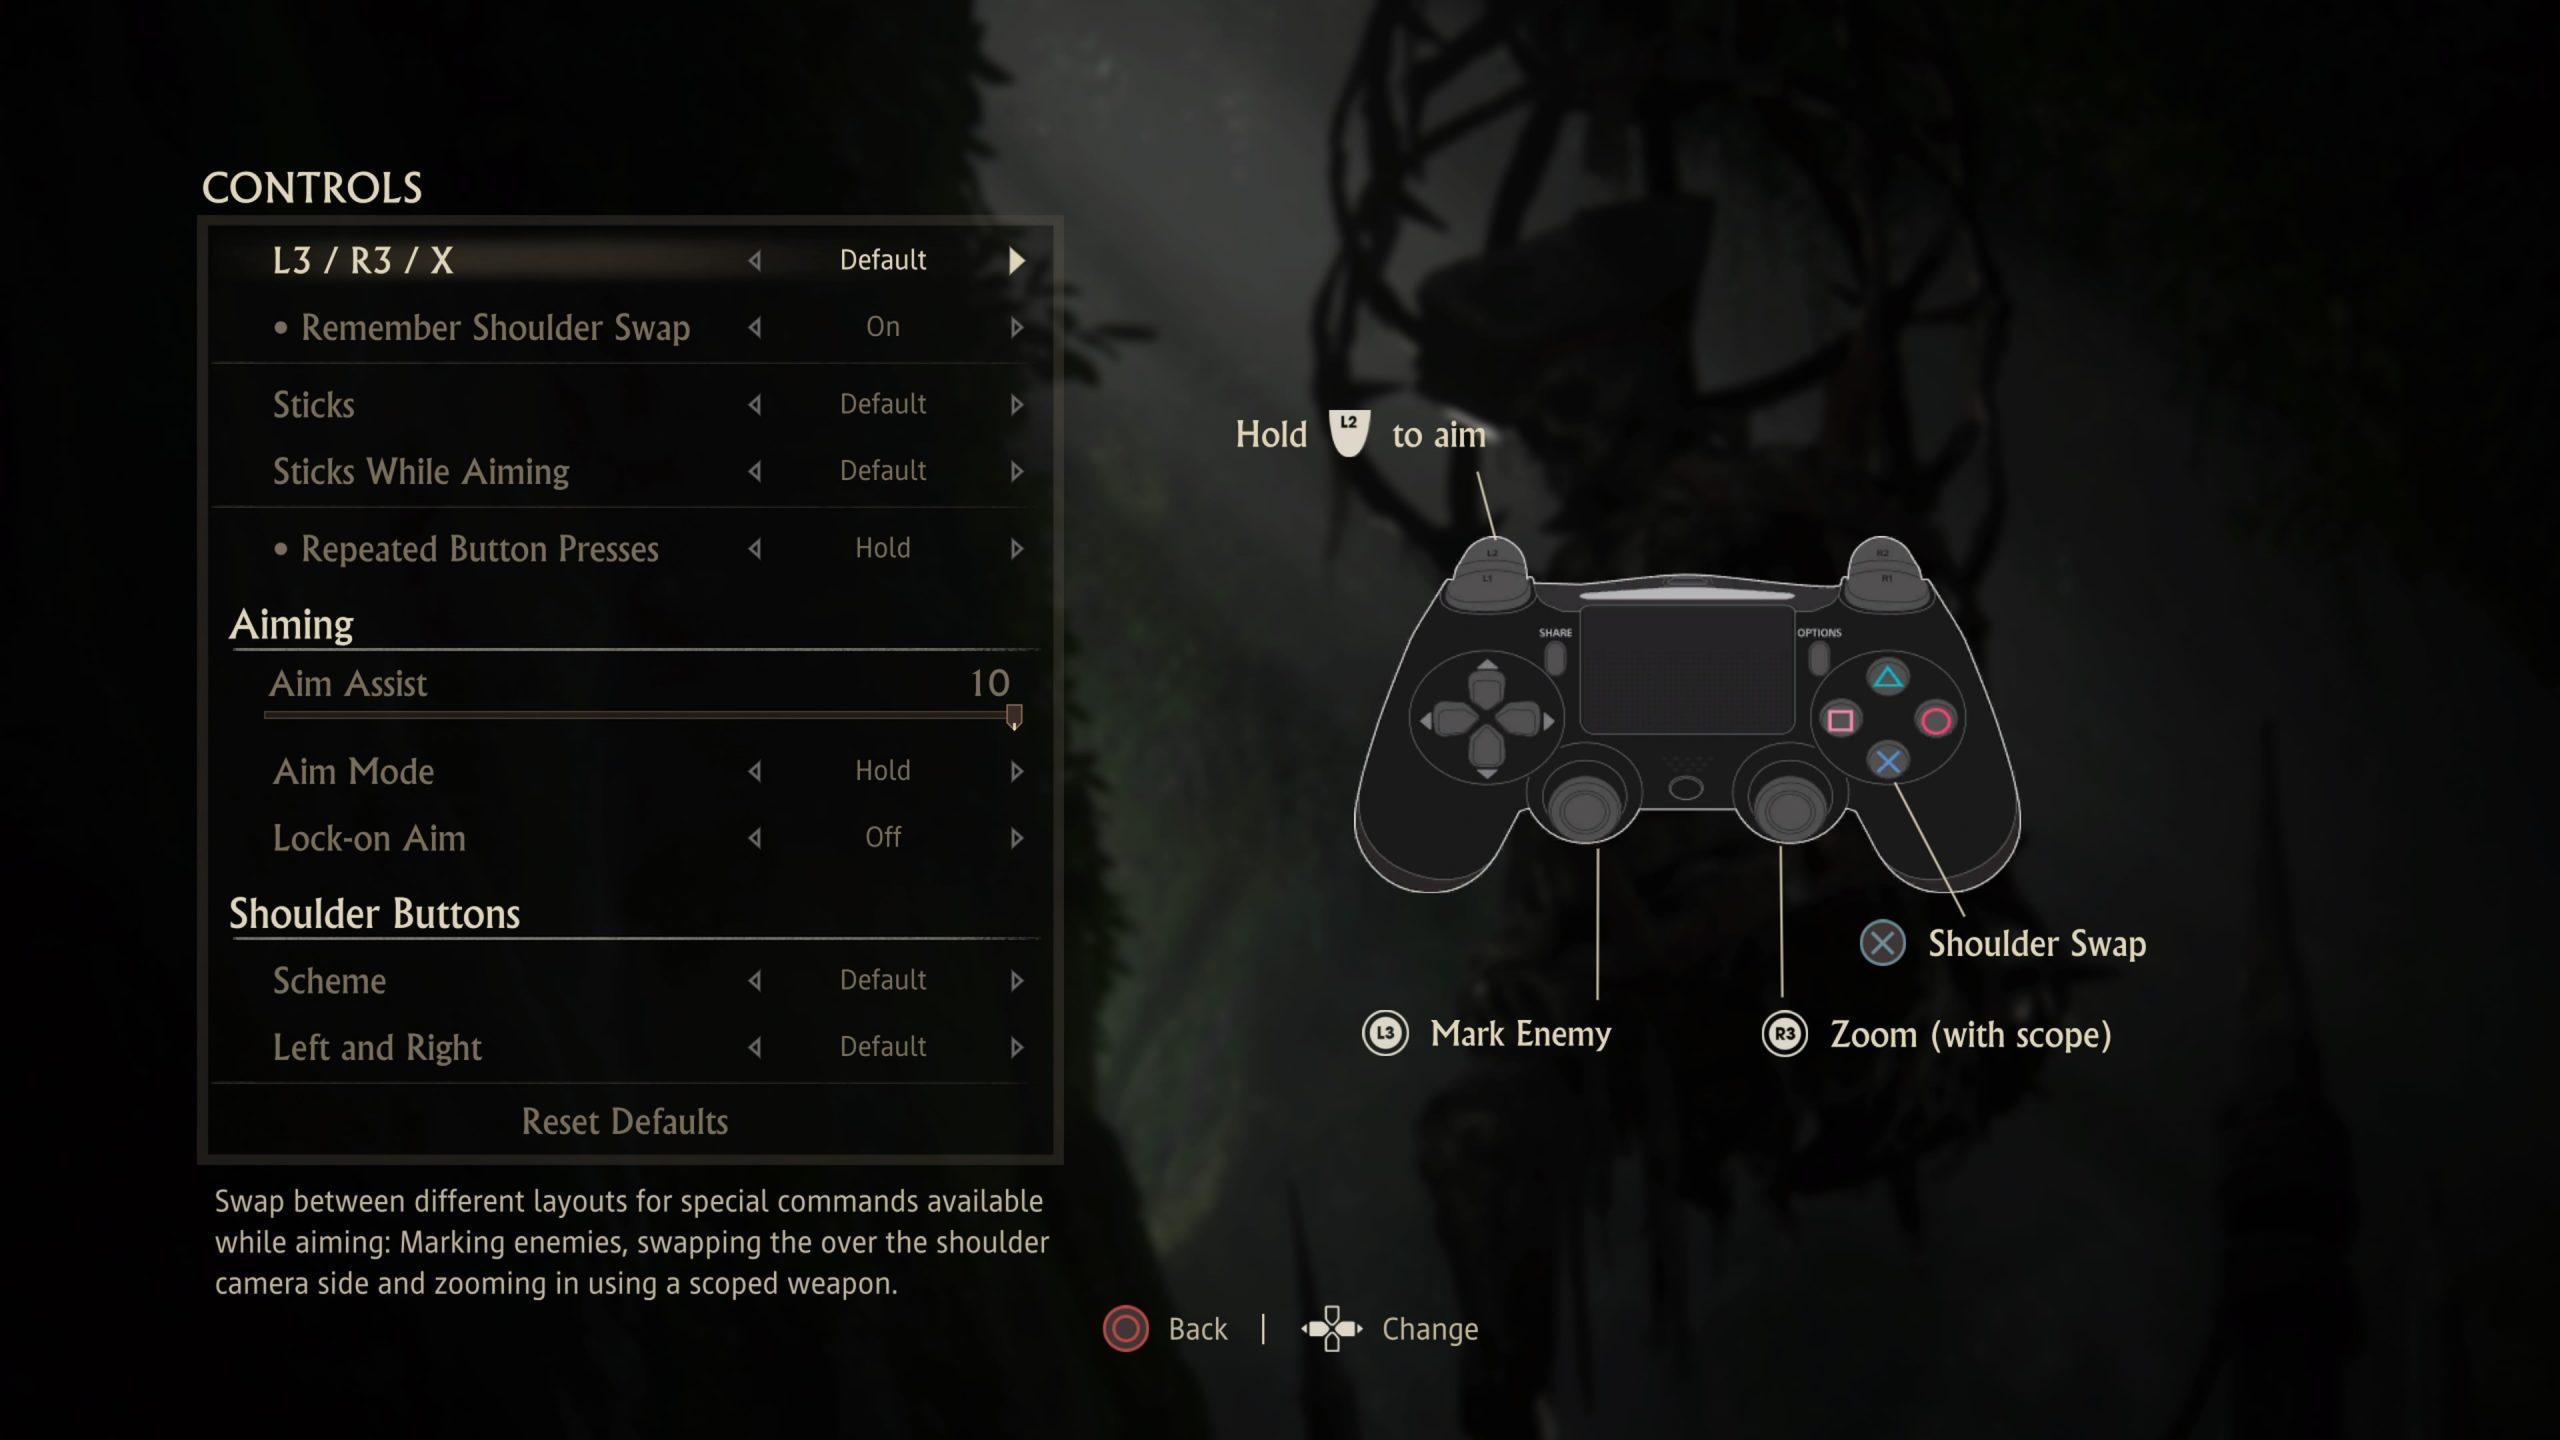 Screenshot of the list of settings found in the Controls sub-menu